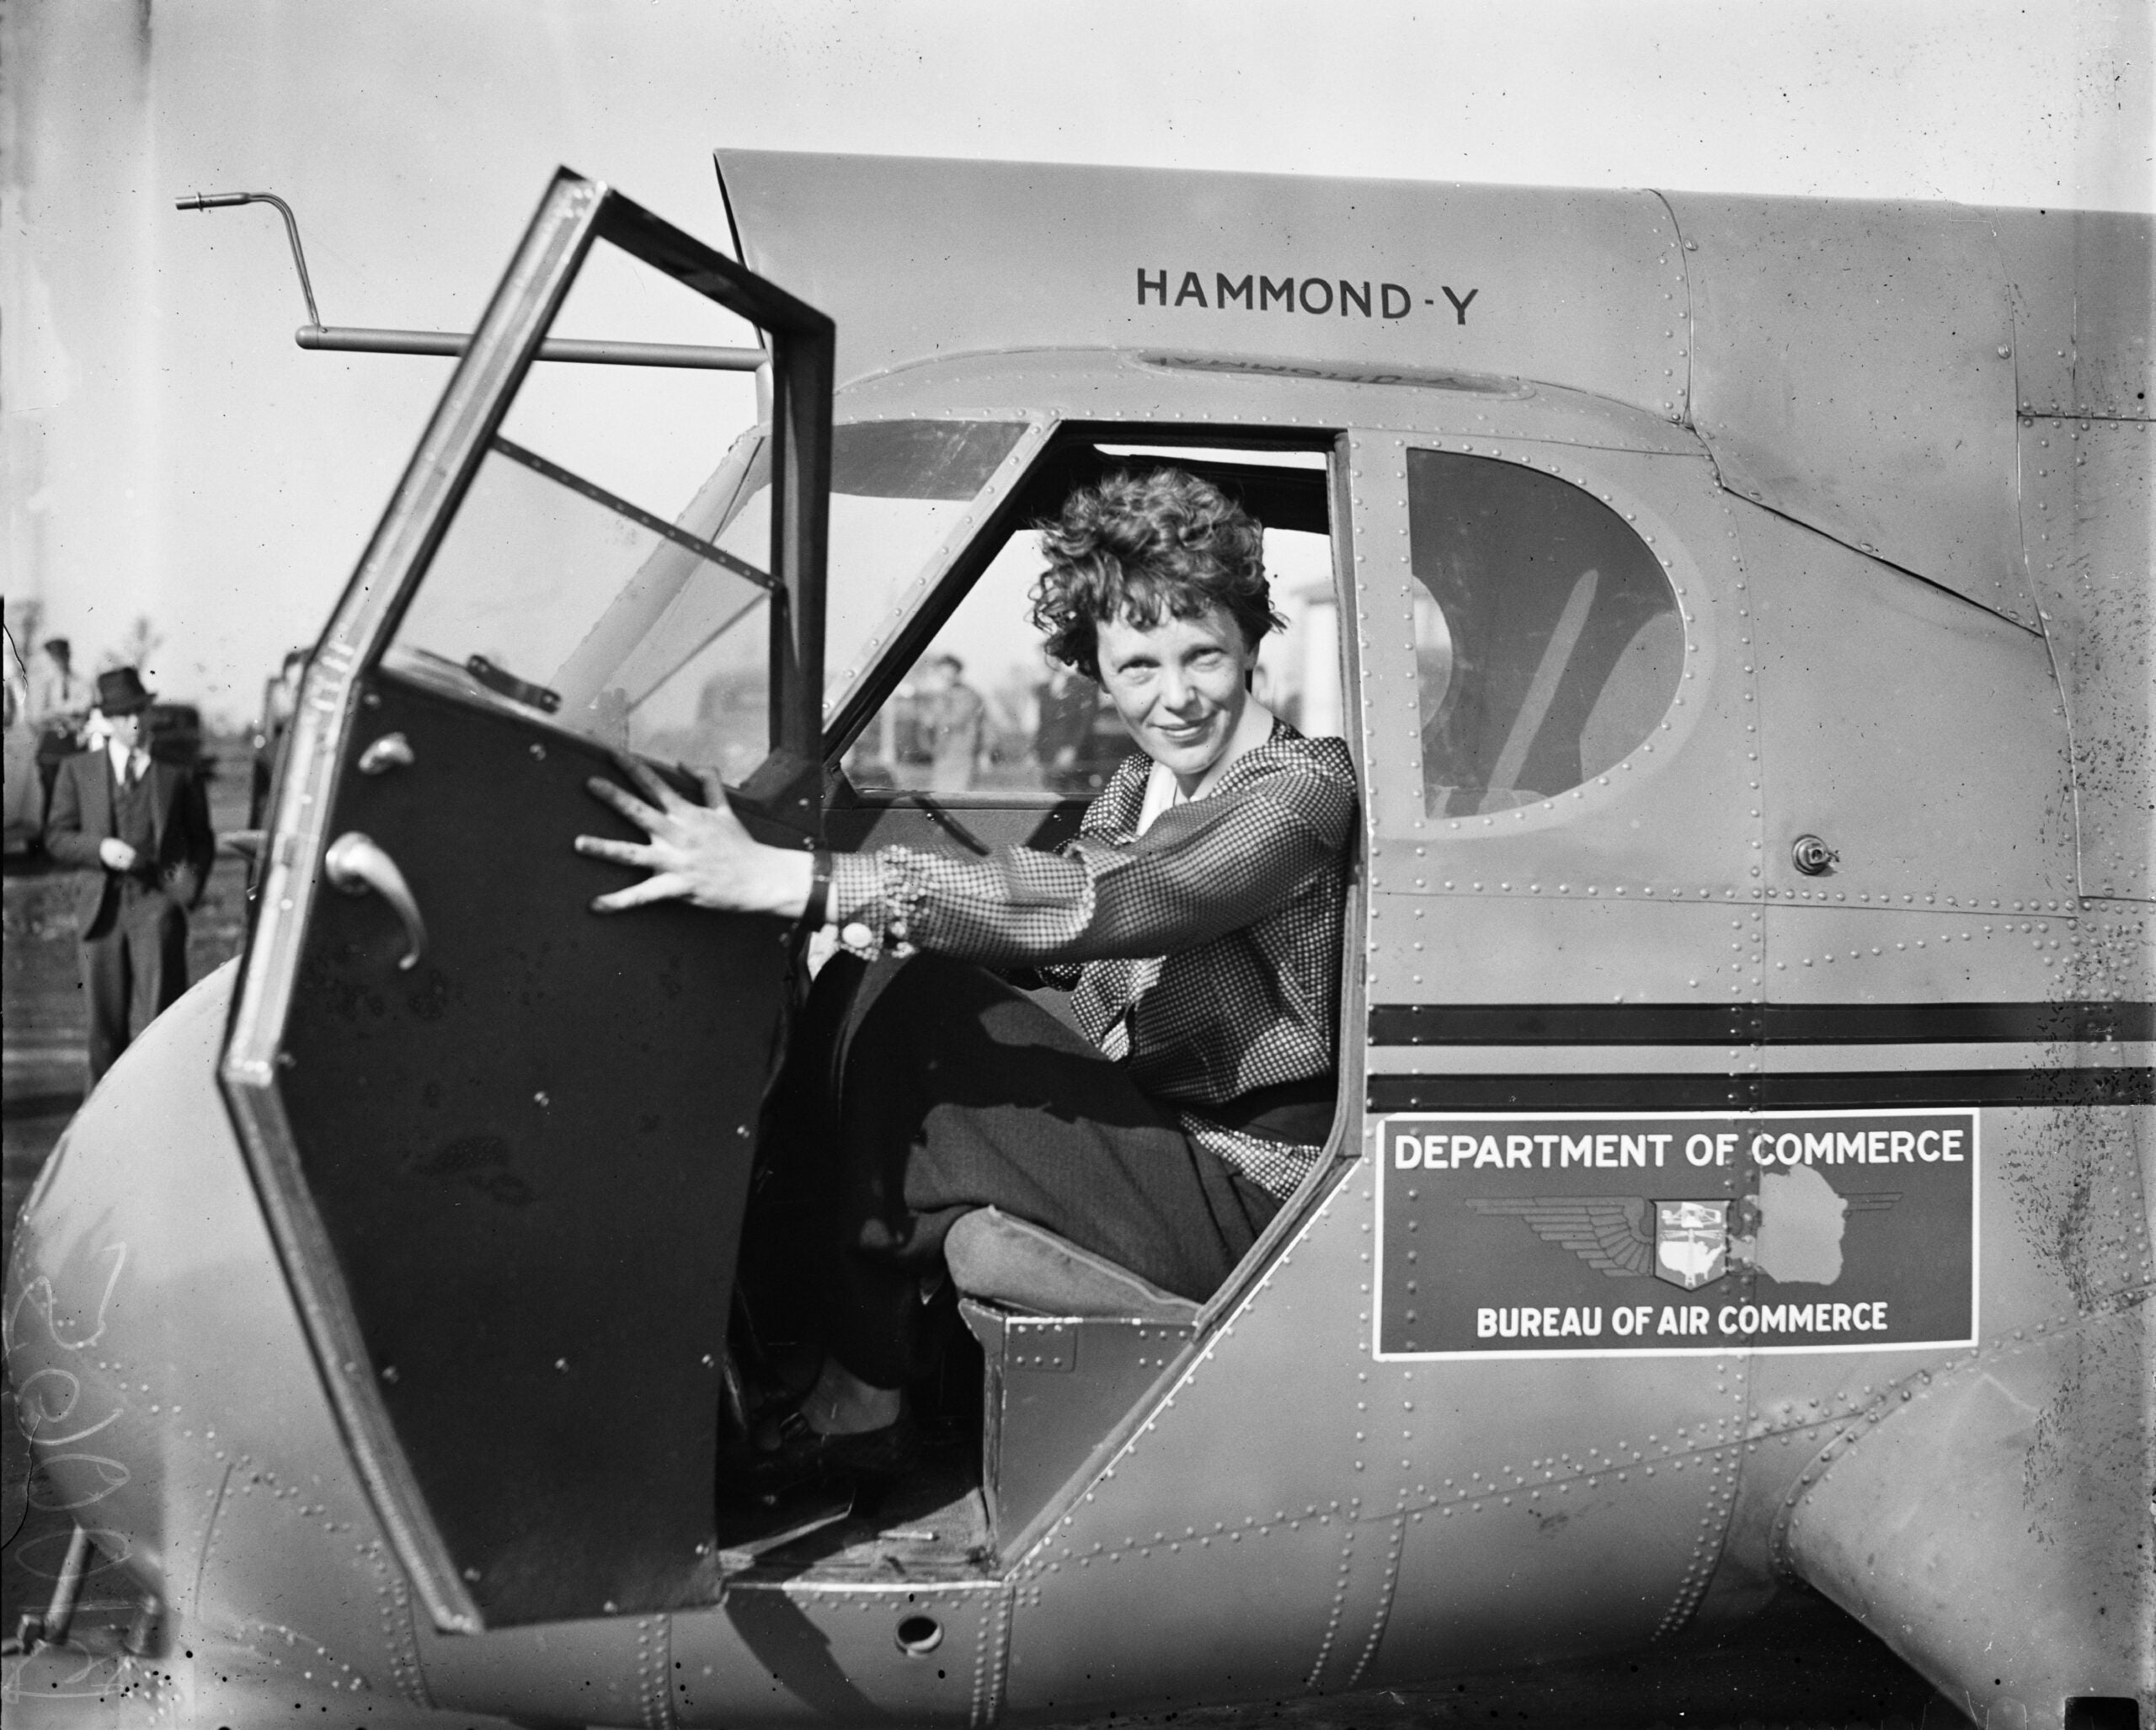 Many have tried, but no one has solved the mystery of Amelia Earhart's demise